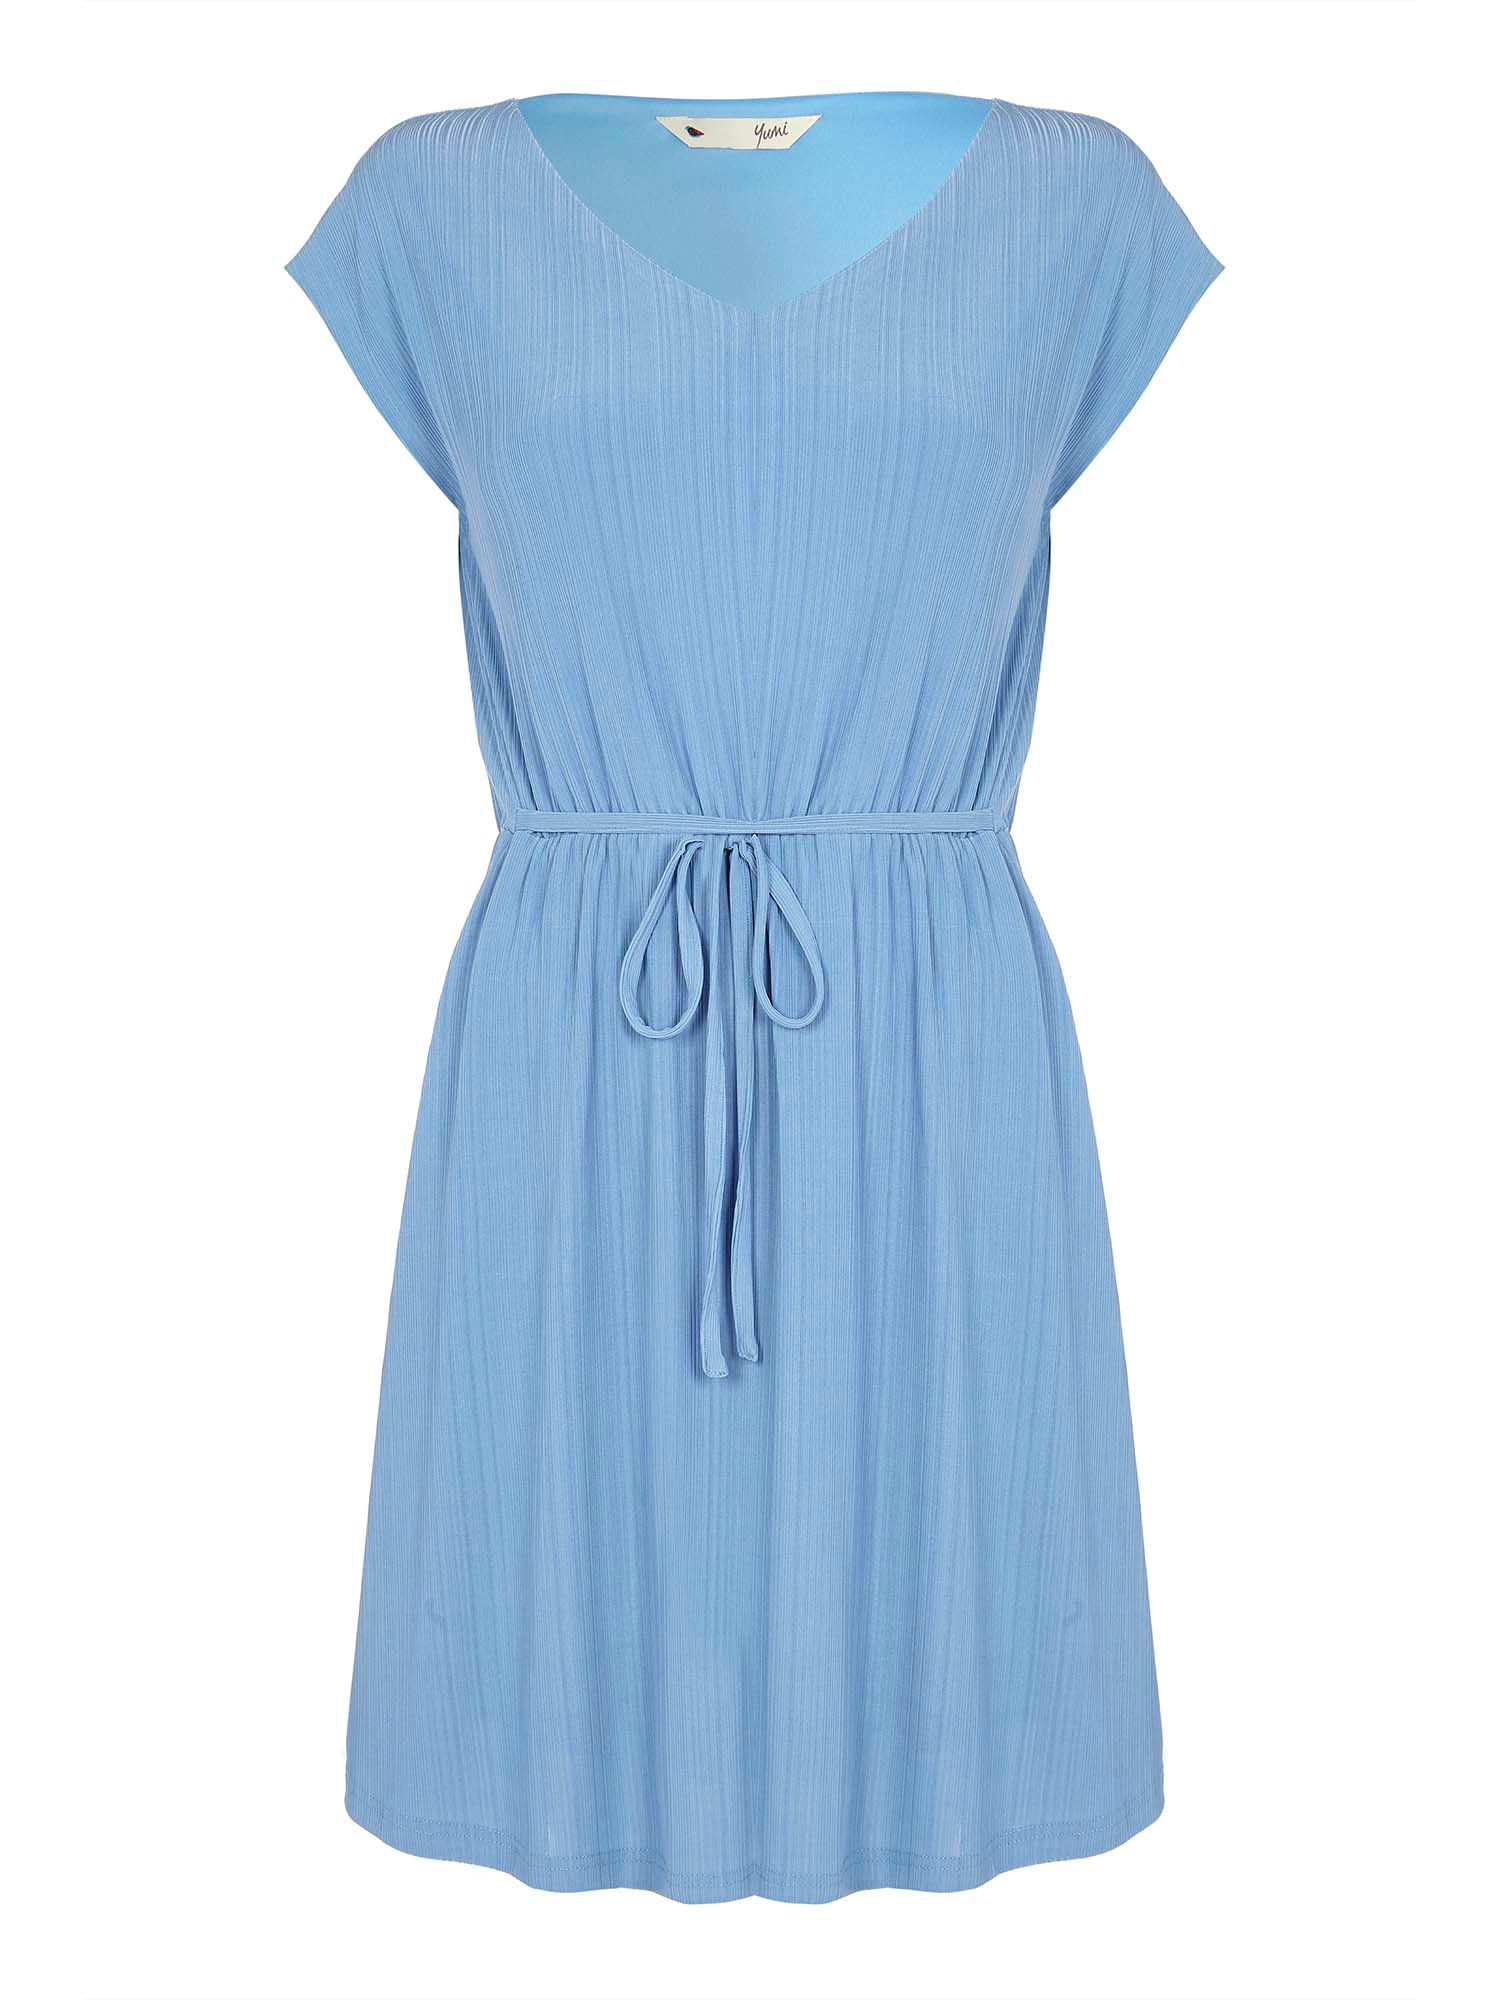 Yumi Striped Dress with Tie Waist, Blue